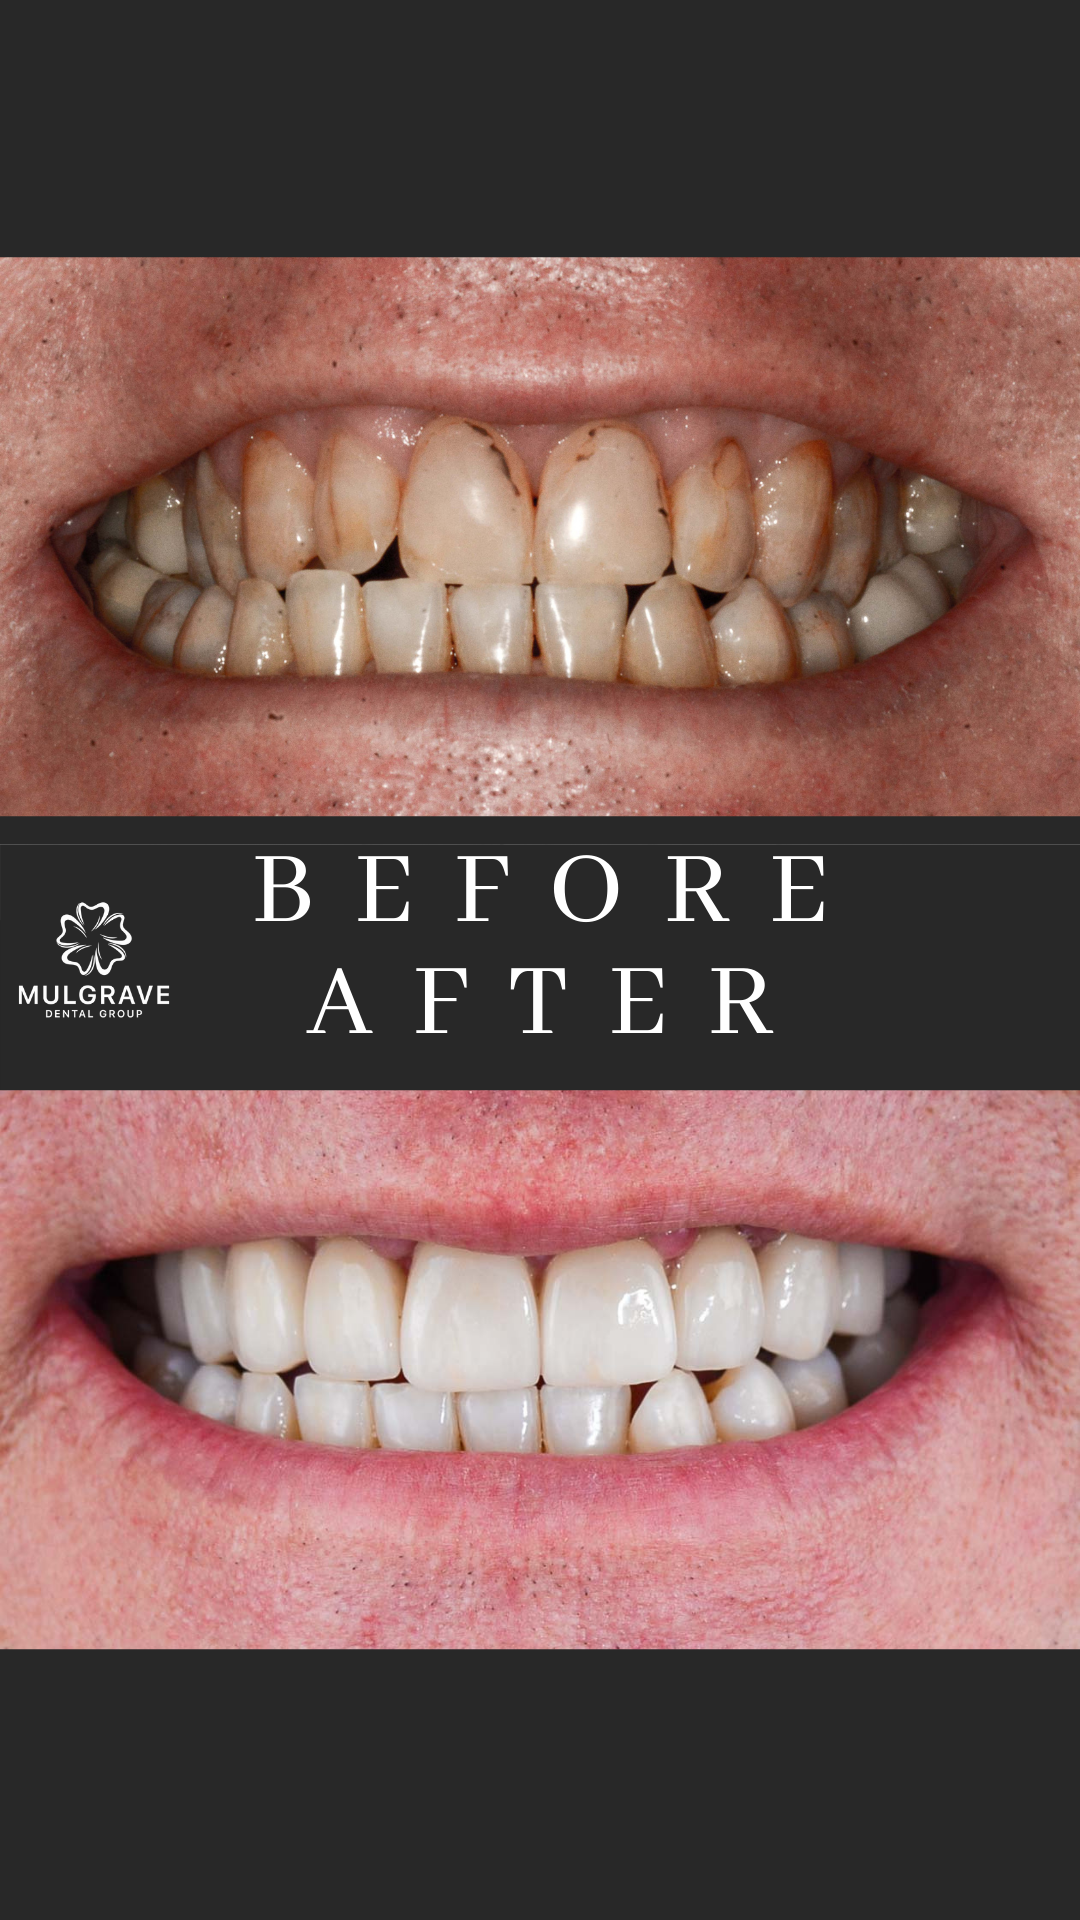 MDG Veneers Before and After BRE001